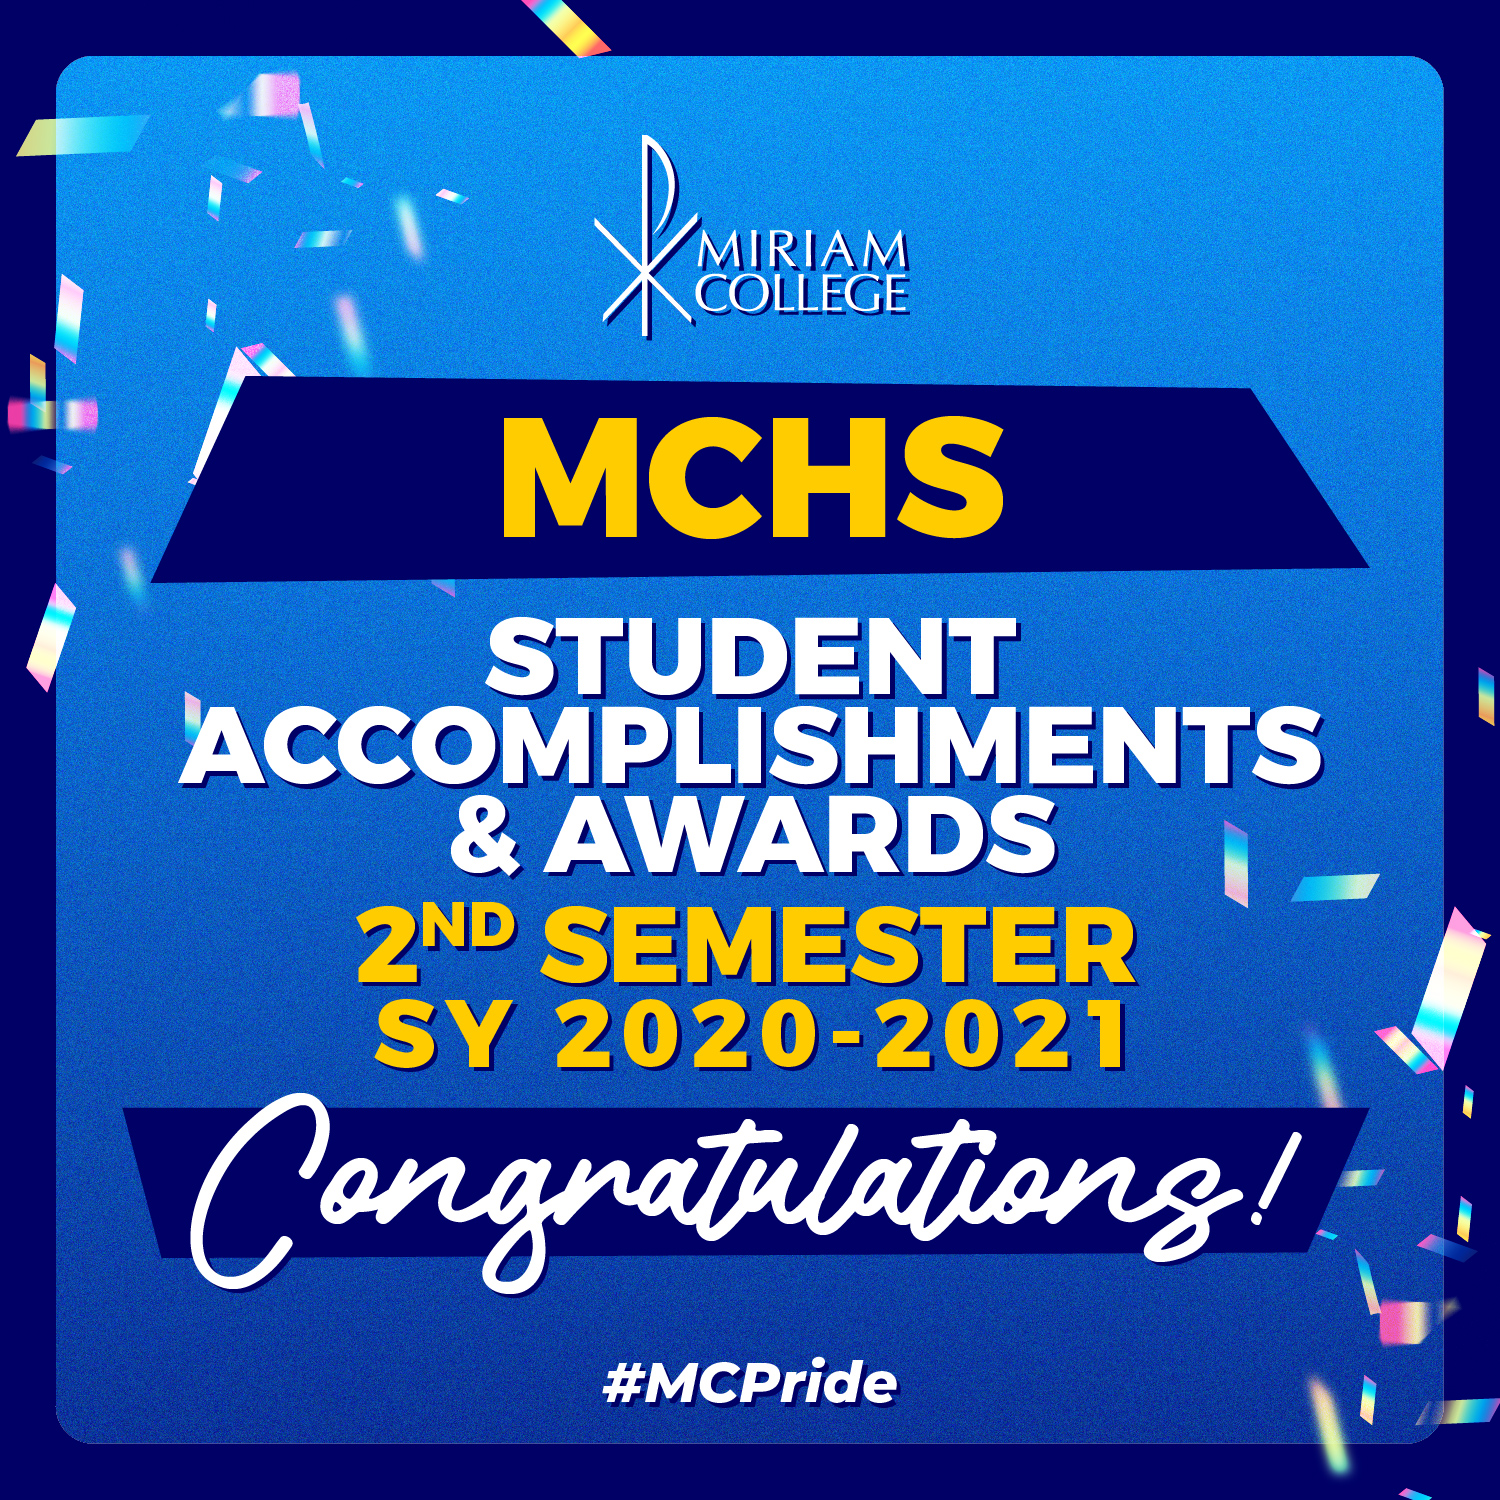 MCHS Accomplishments and Awards for 2nd Semester, SY 2020-2021